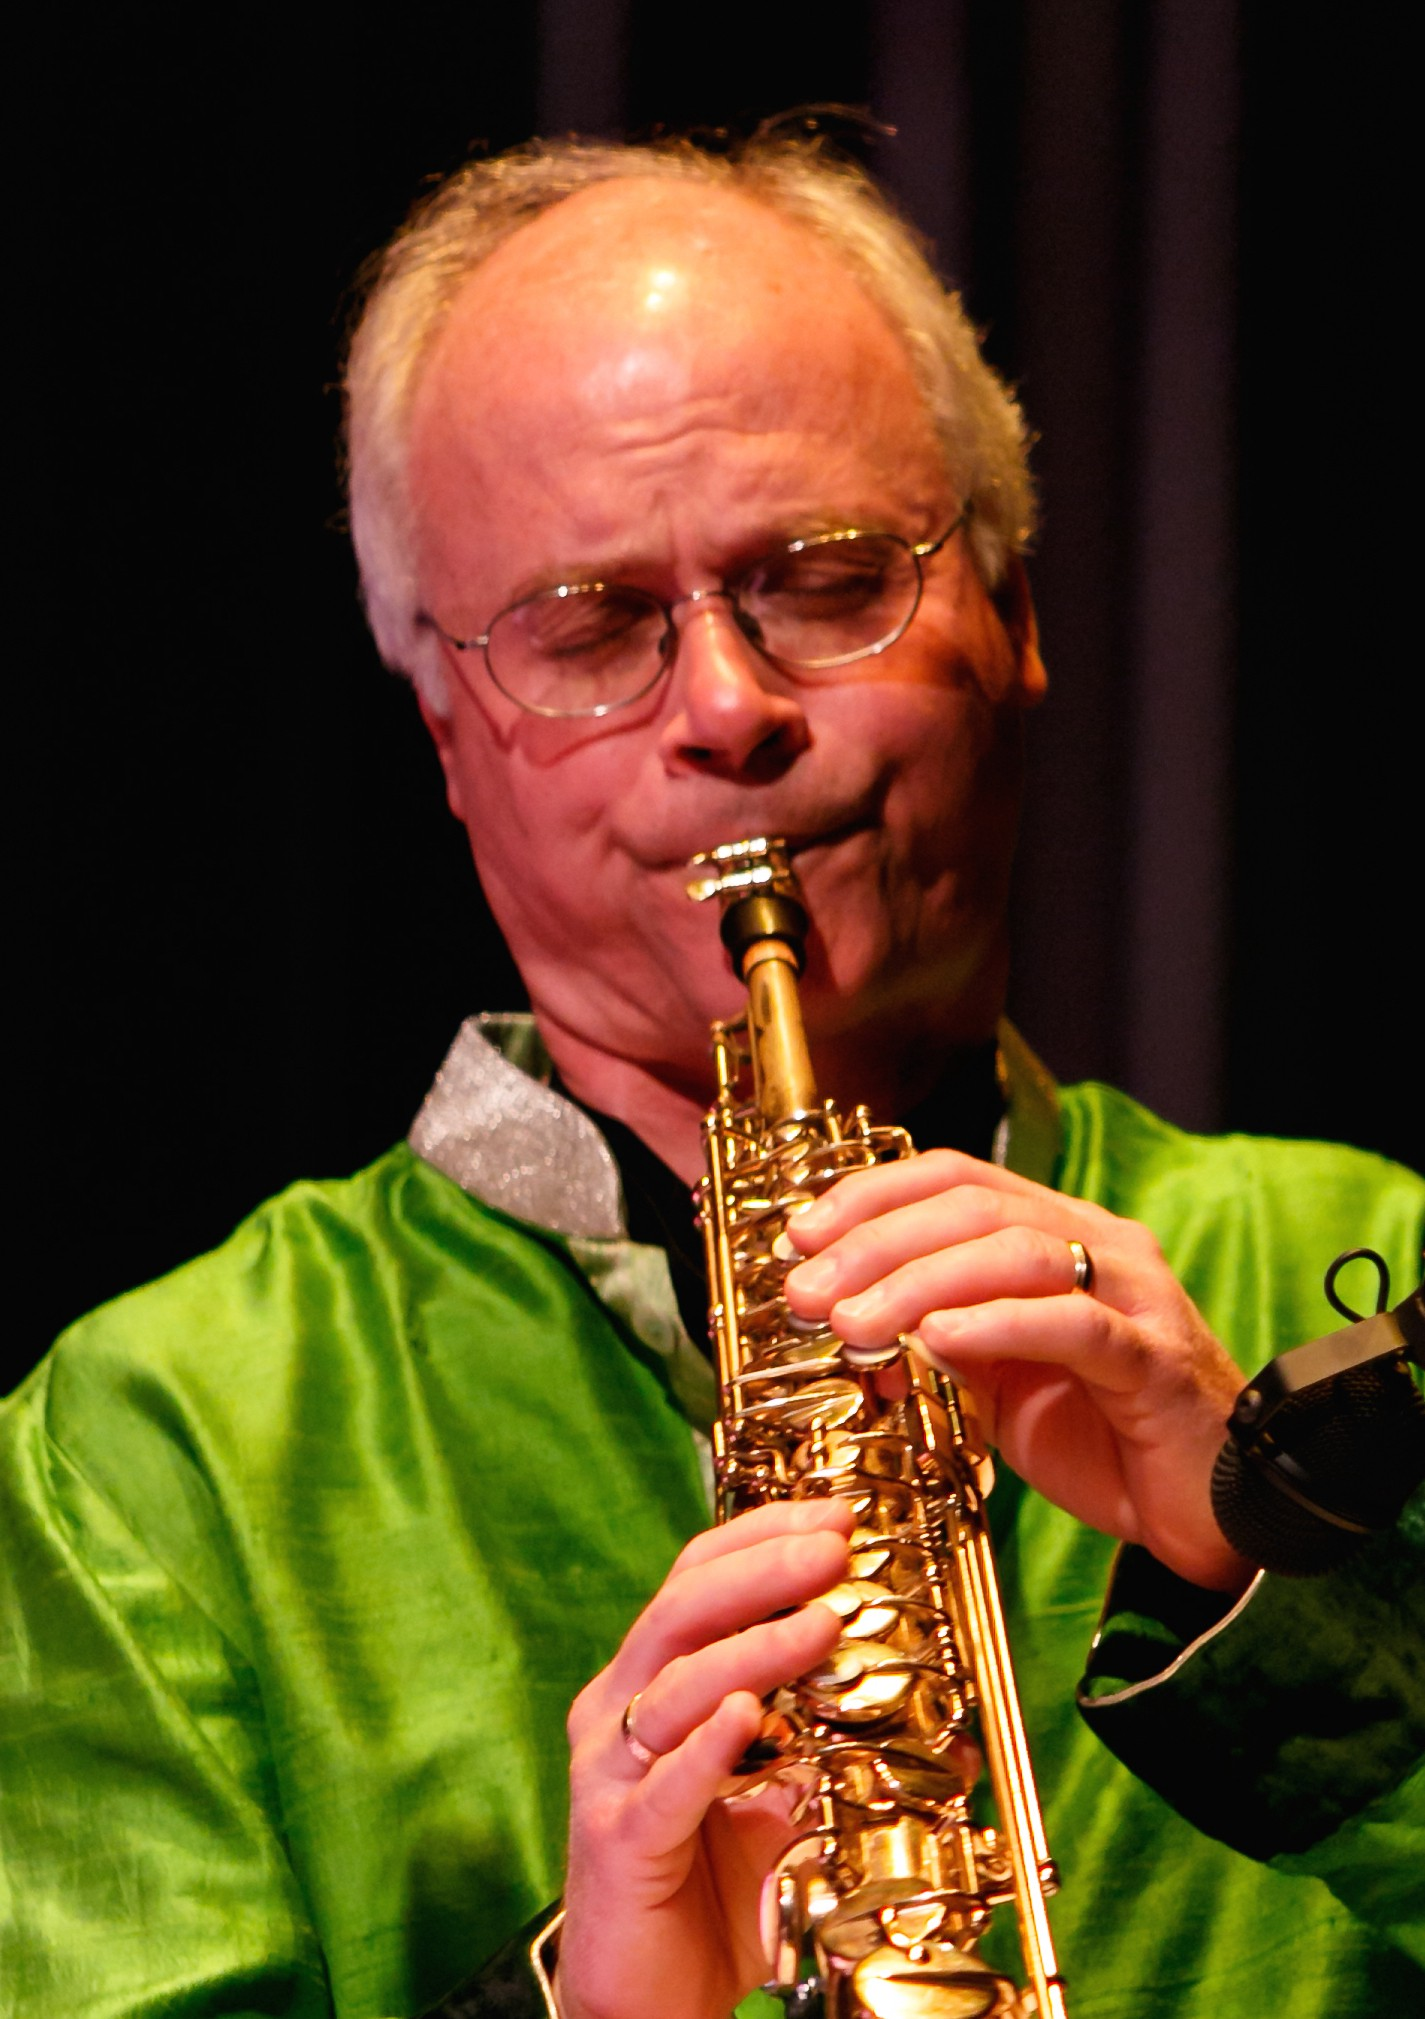 Ragas on Saxophone is a tribute to North Indian classical music